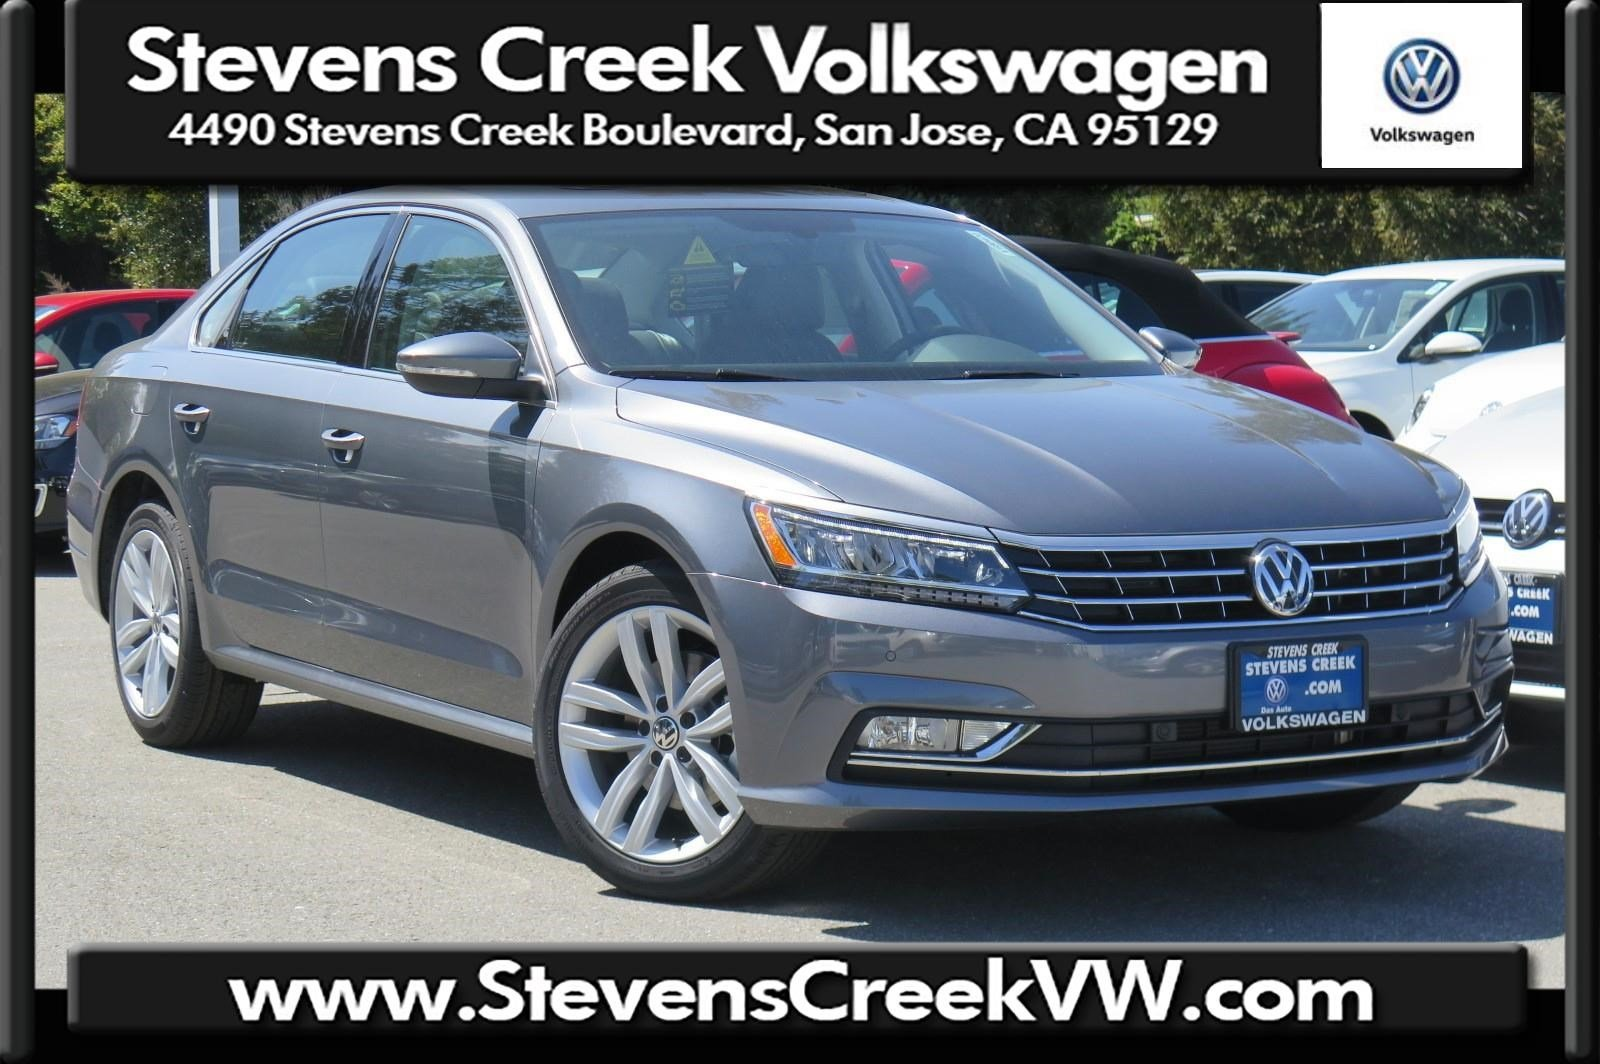 New 2018 Volkswagen Passat 2.0T SE w/Technology FWD 4dr Car VIN JC27636 MSRP $30,900